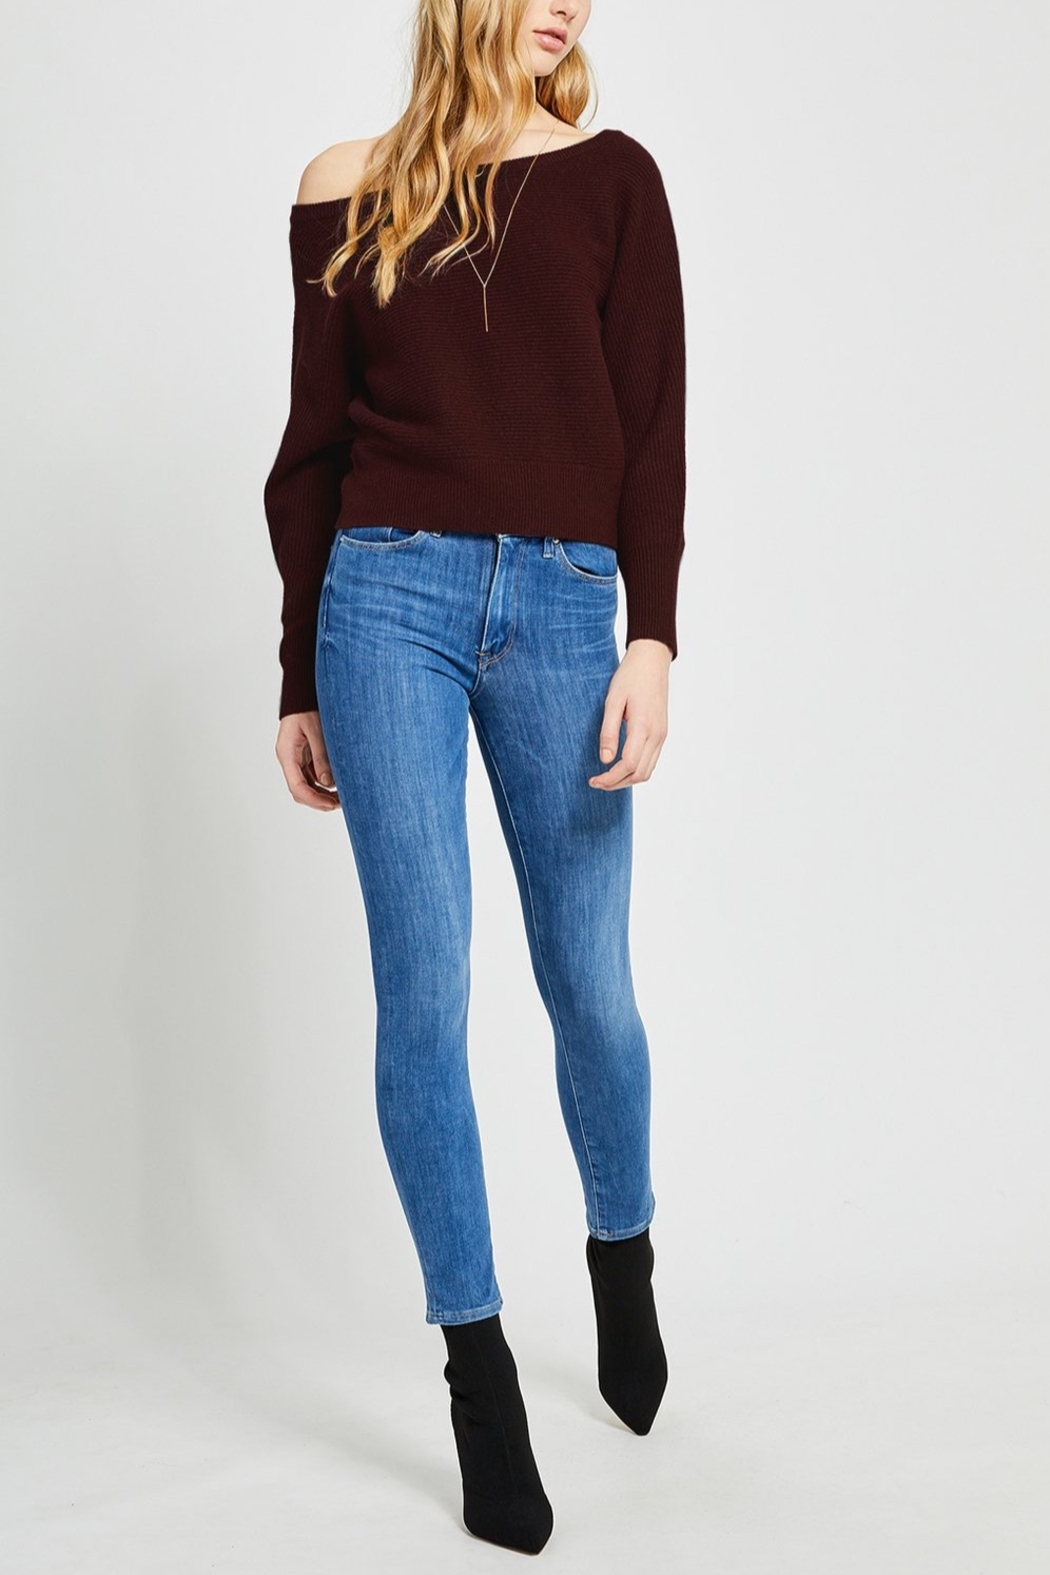 Gentle Fawn Camillo Off Shoulder Sweater - Front Cropped Image